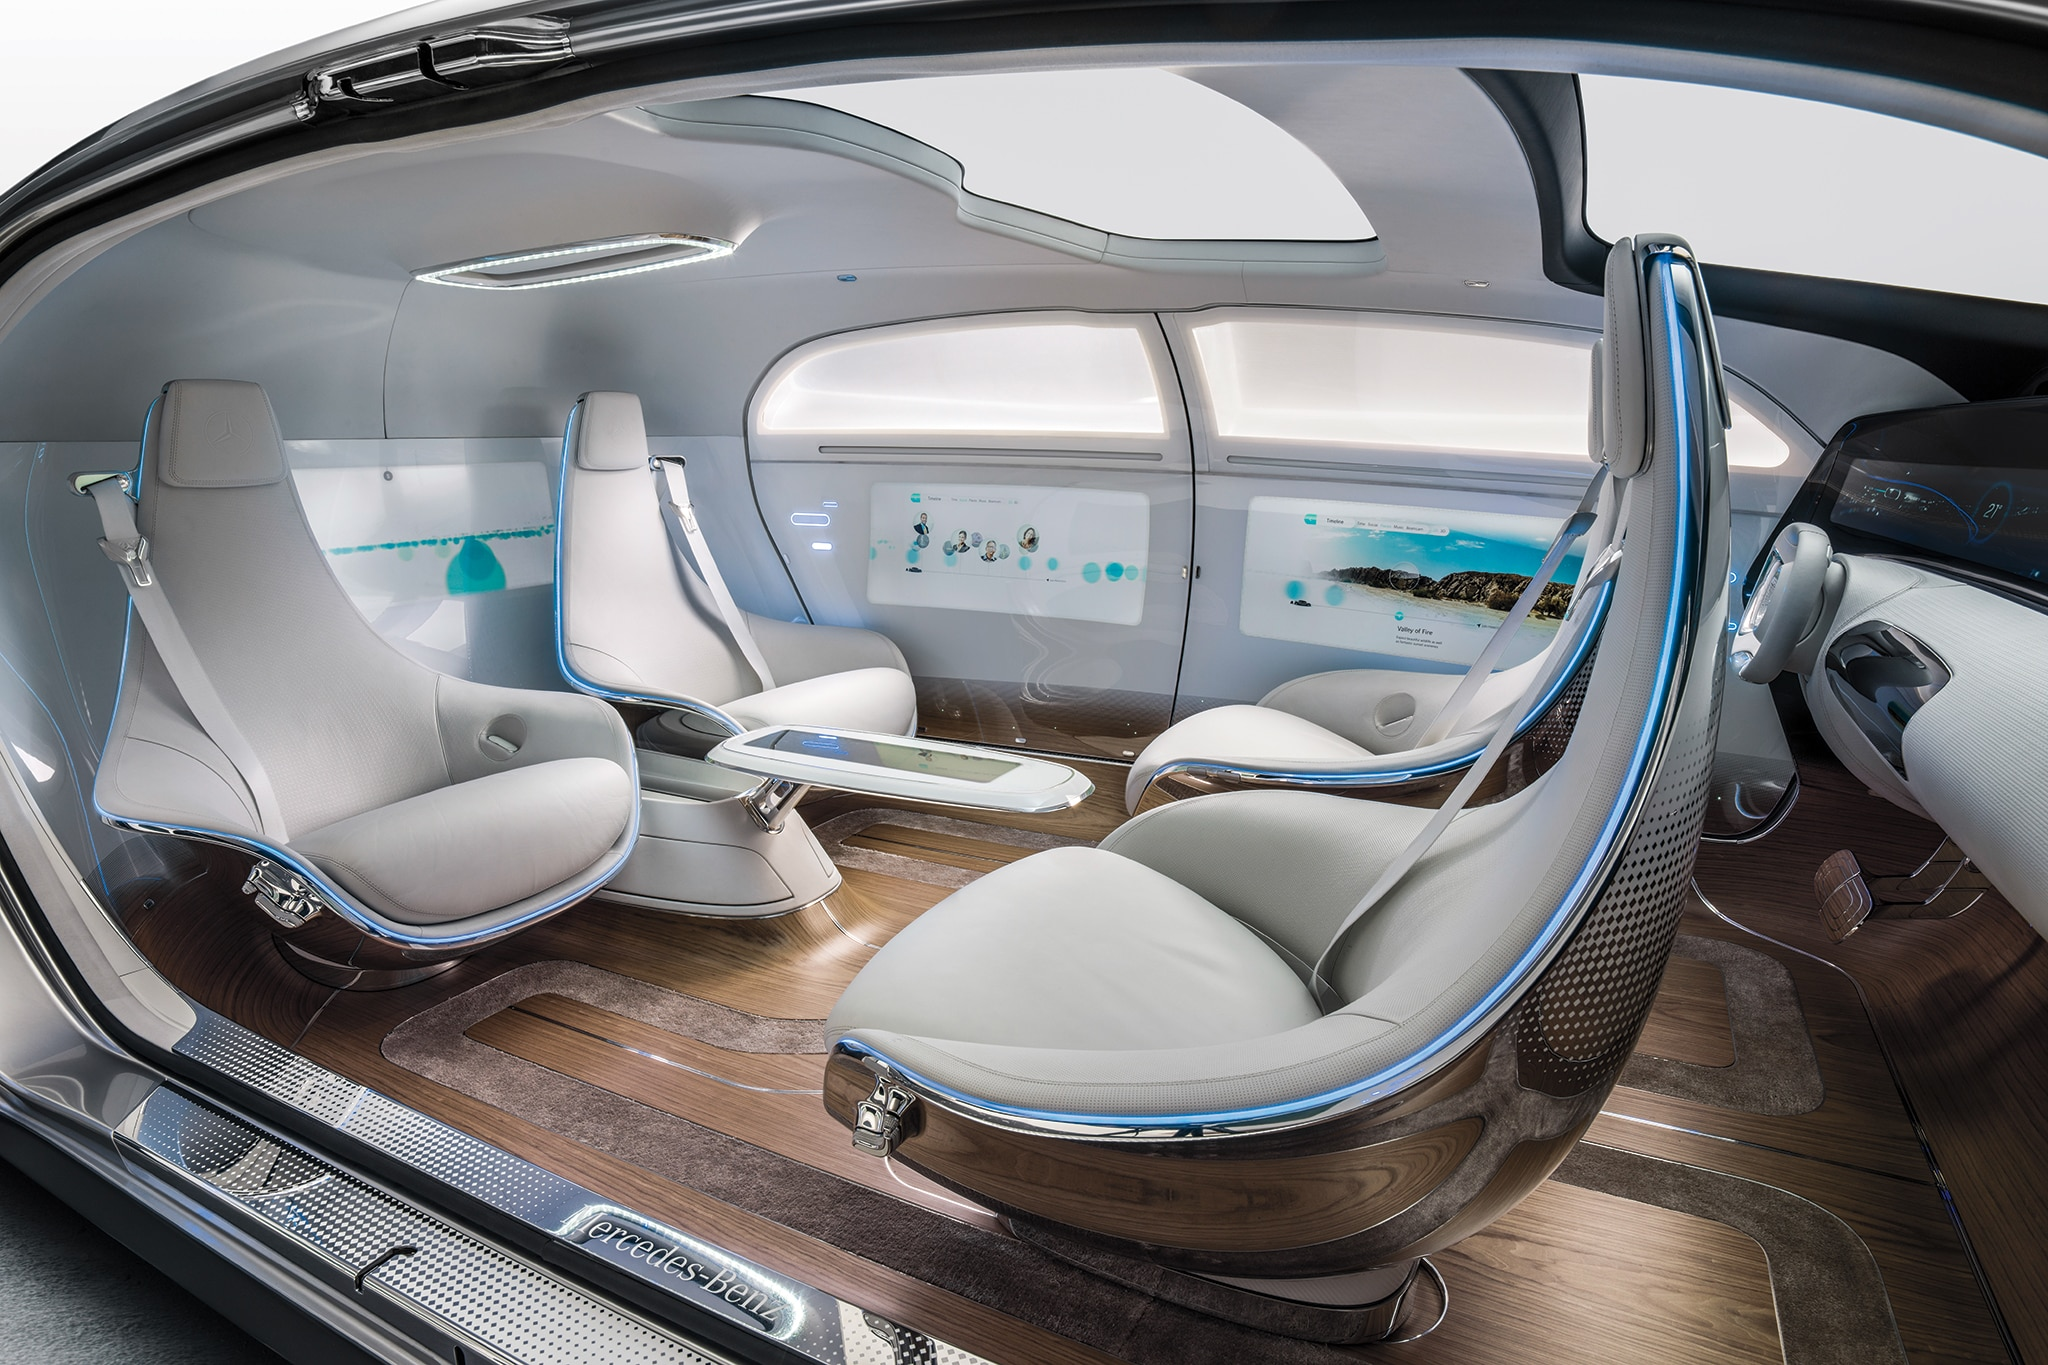 Astounding Inside The Cocoon What To Expect From Automated Vehicle Interior Design Ideas Tzicisoteloinfo